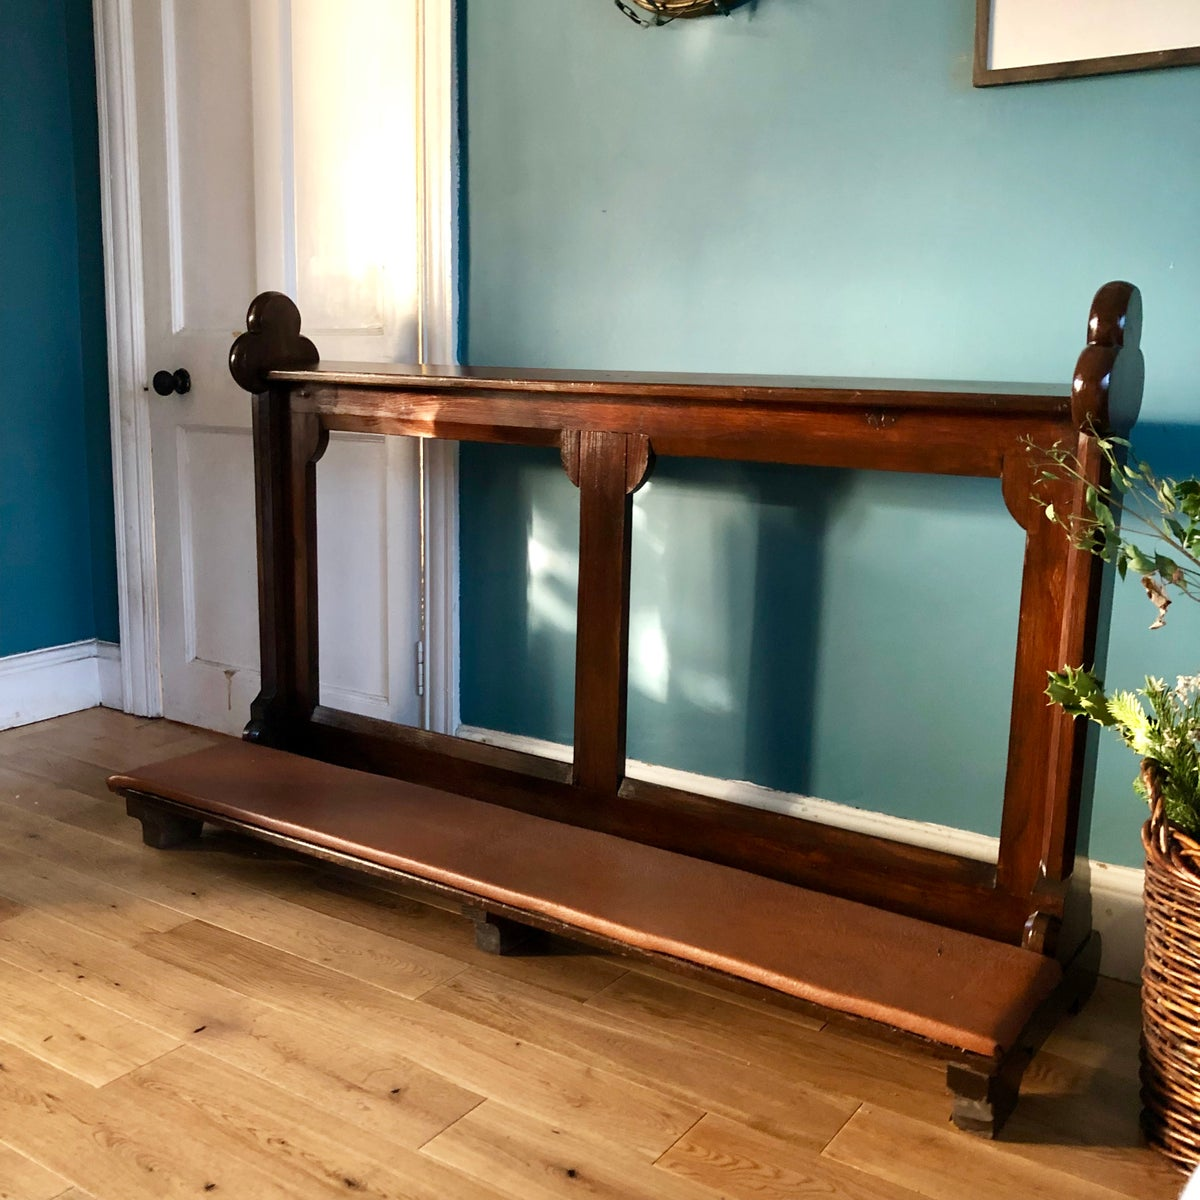 Image of Antique kneeling pew